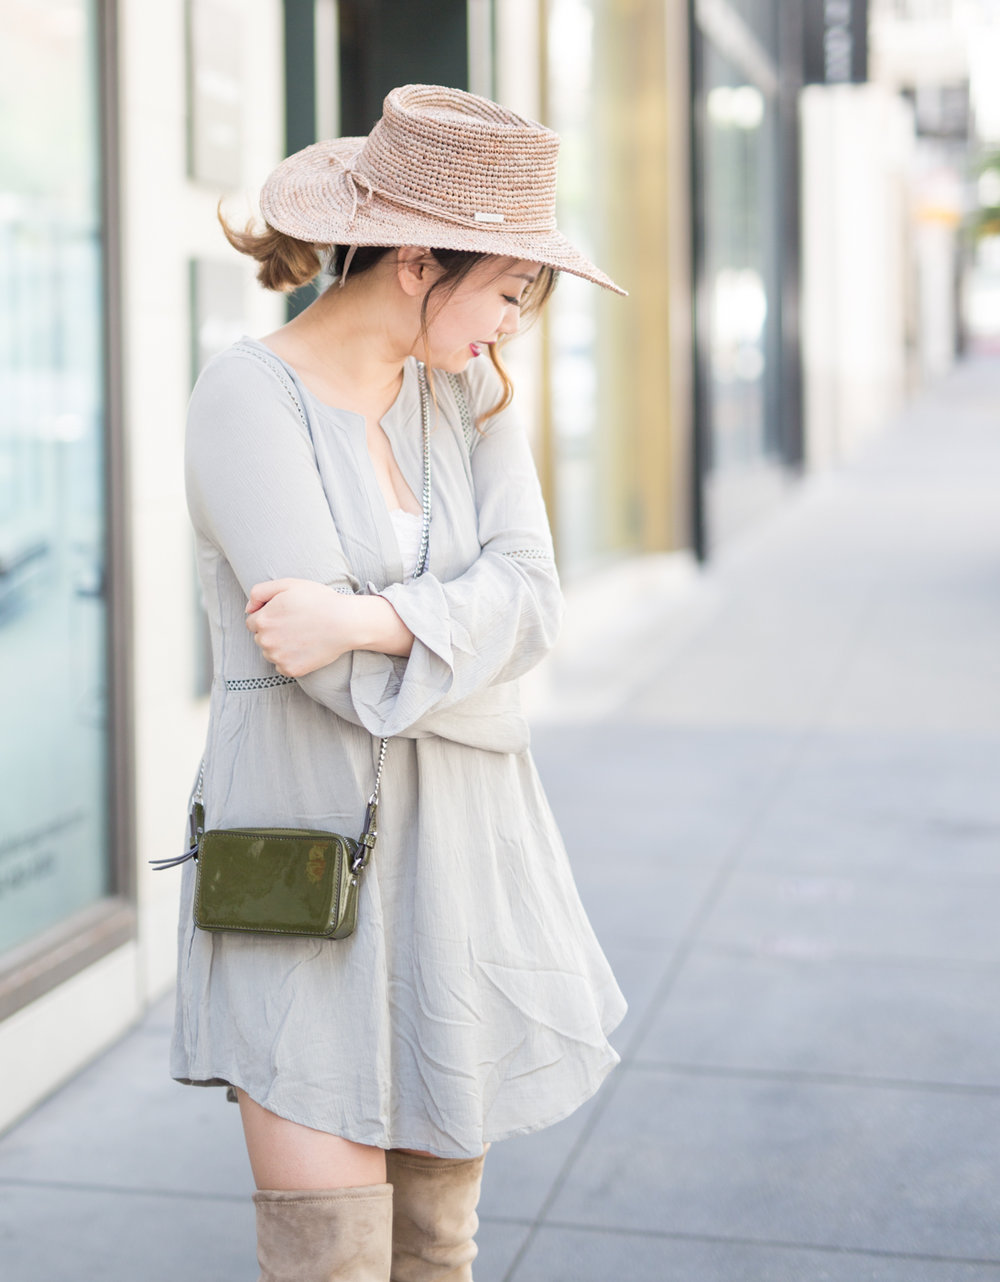 Tobi shift dress & San Diego Hat Co hat | The Chic Diary